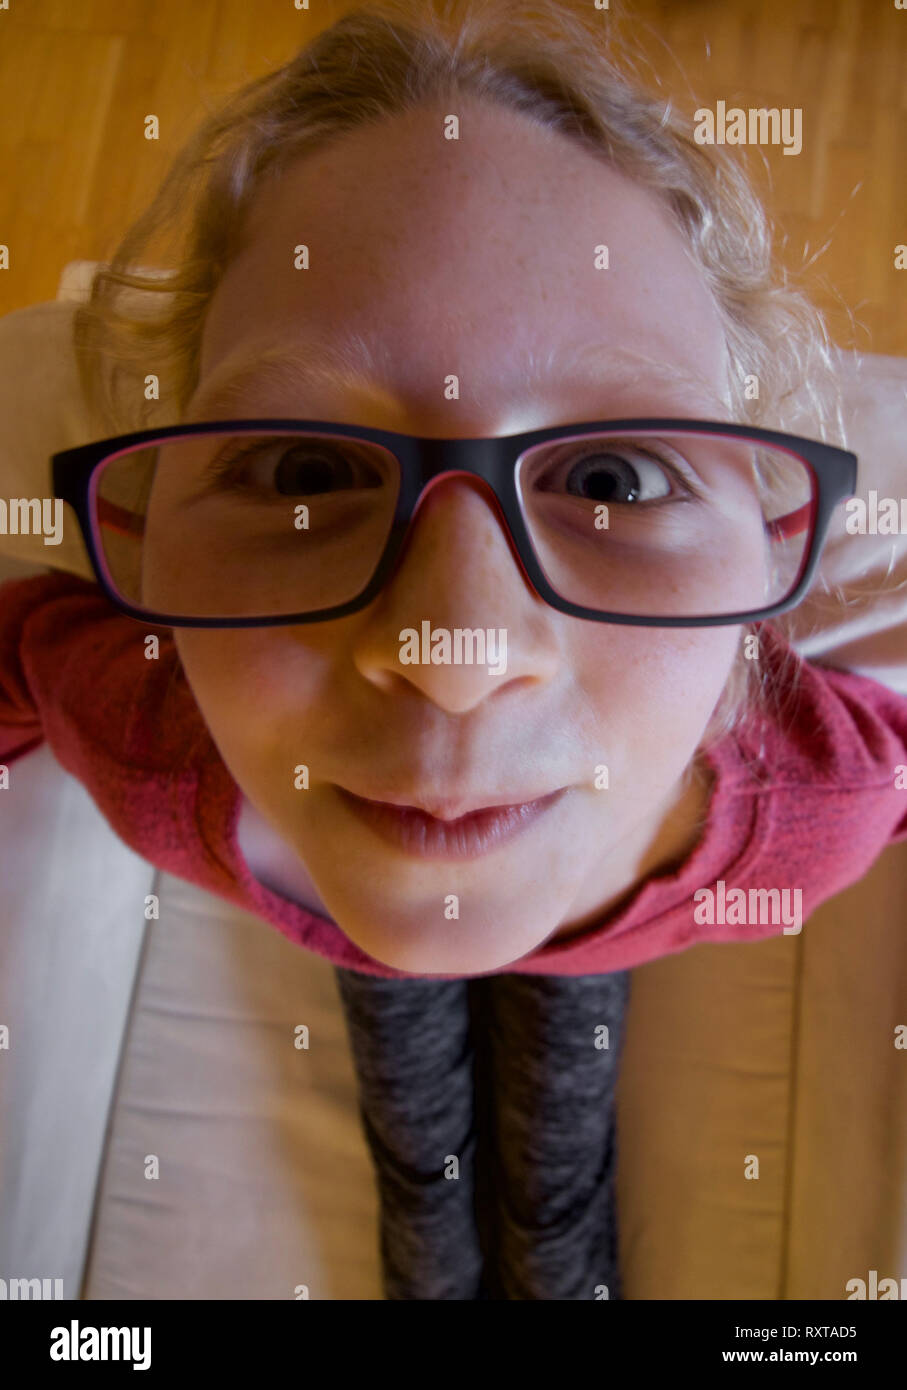 Girl up close with an ultrawide lens - Stock Image